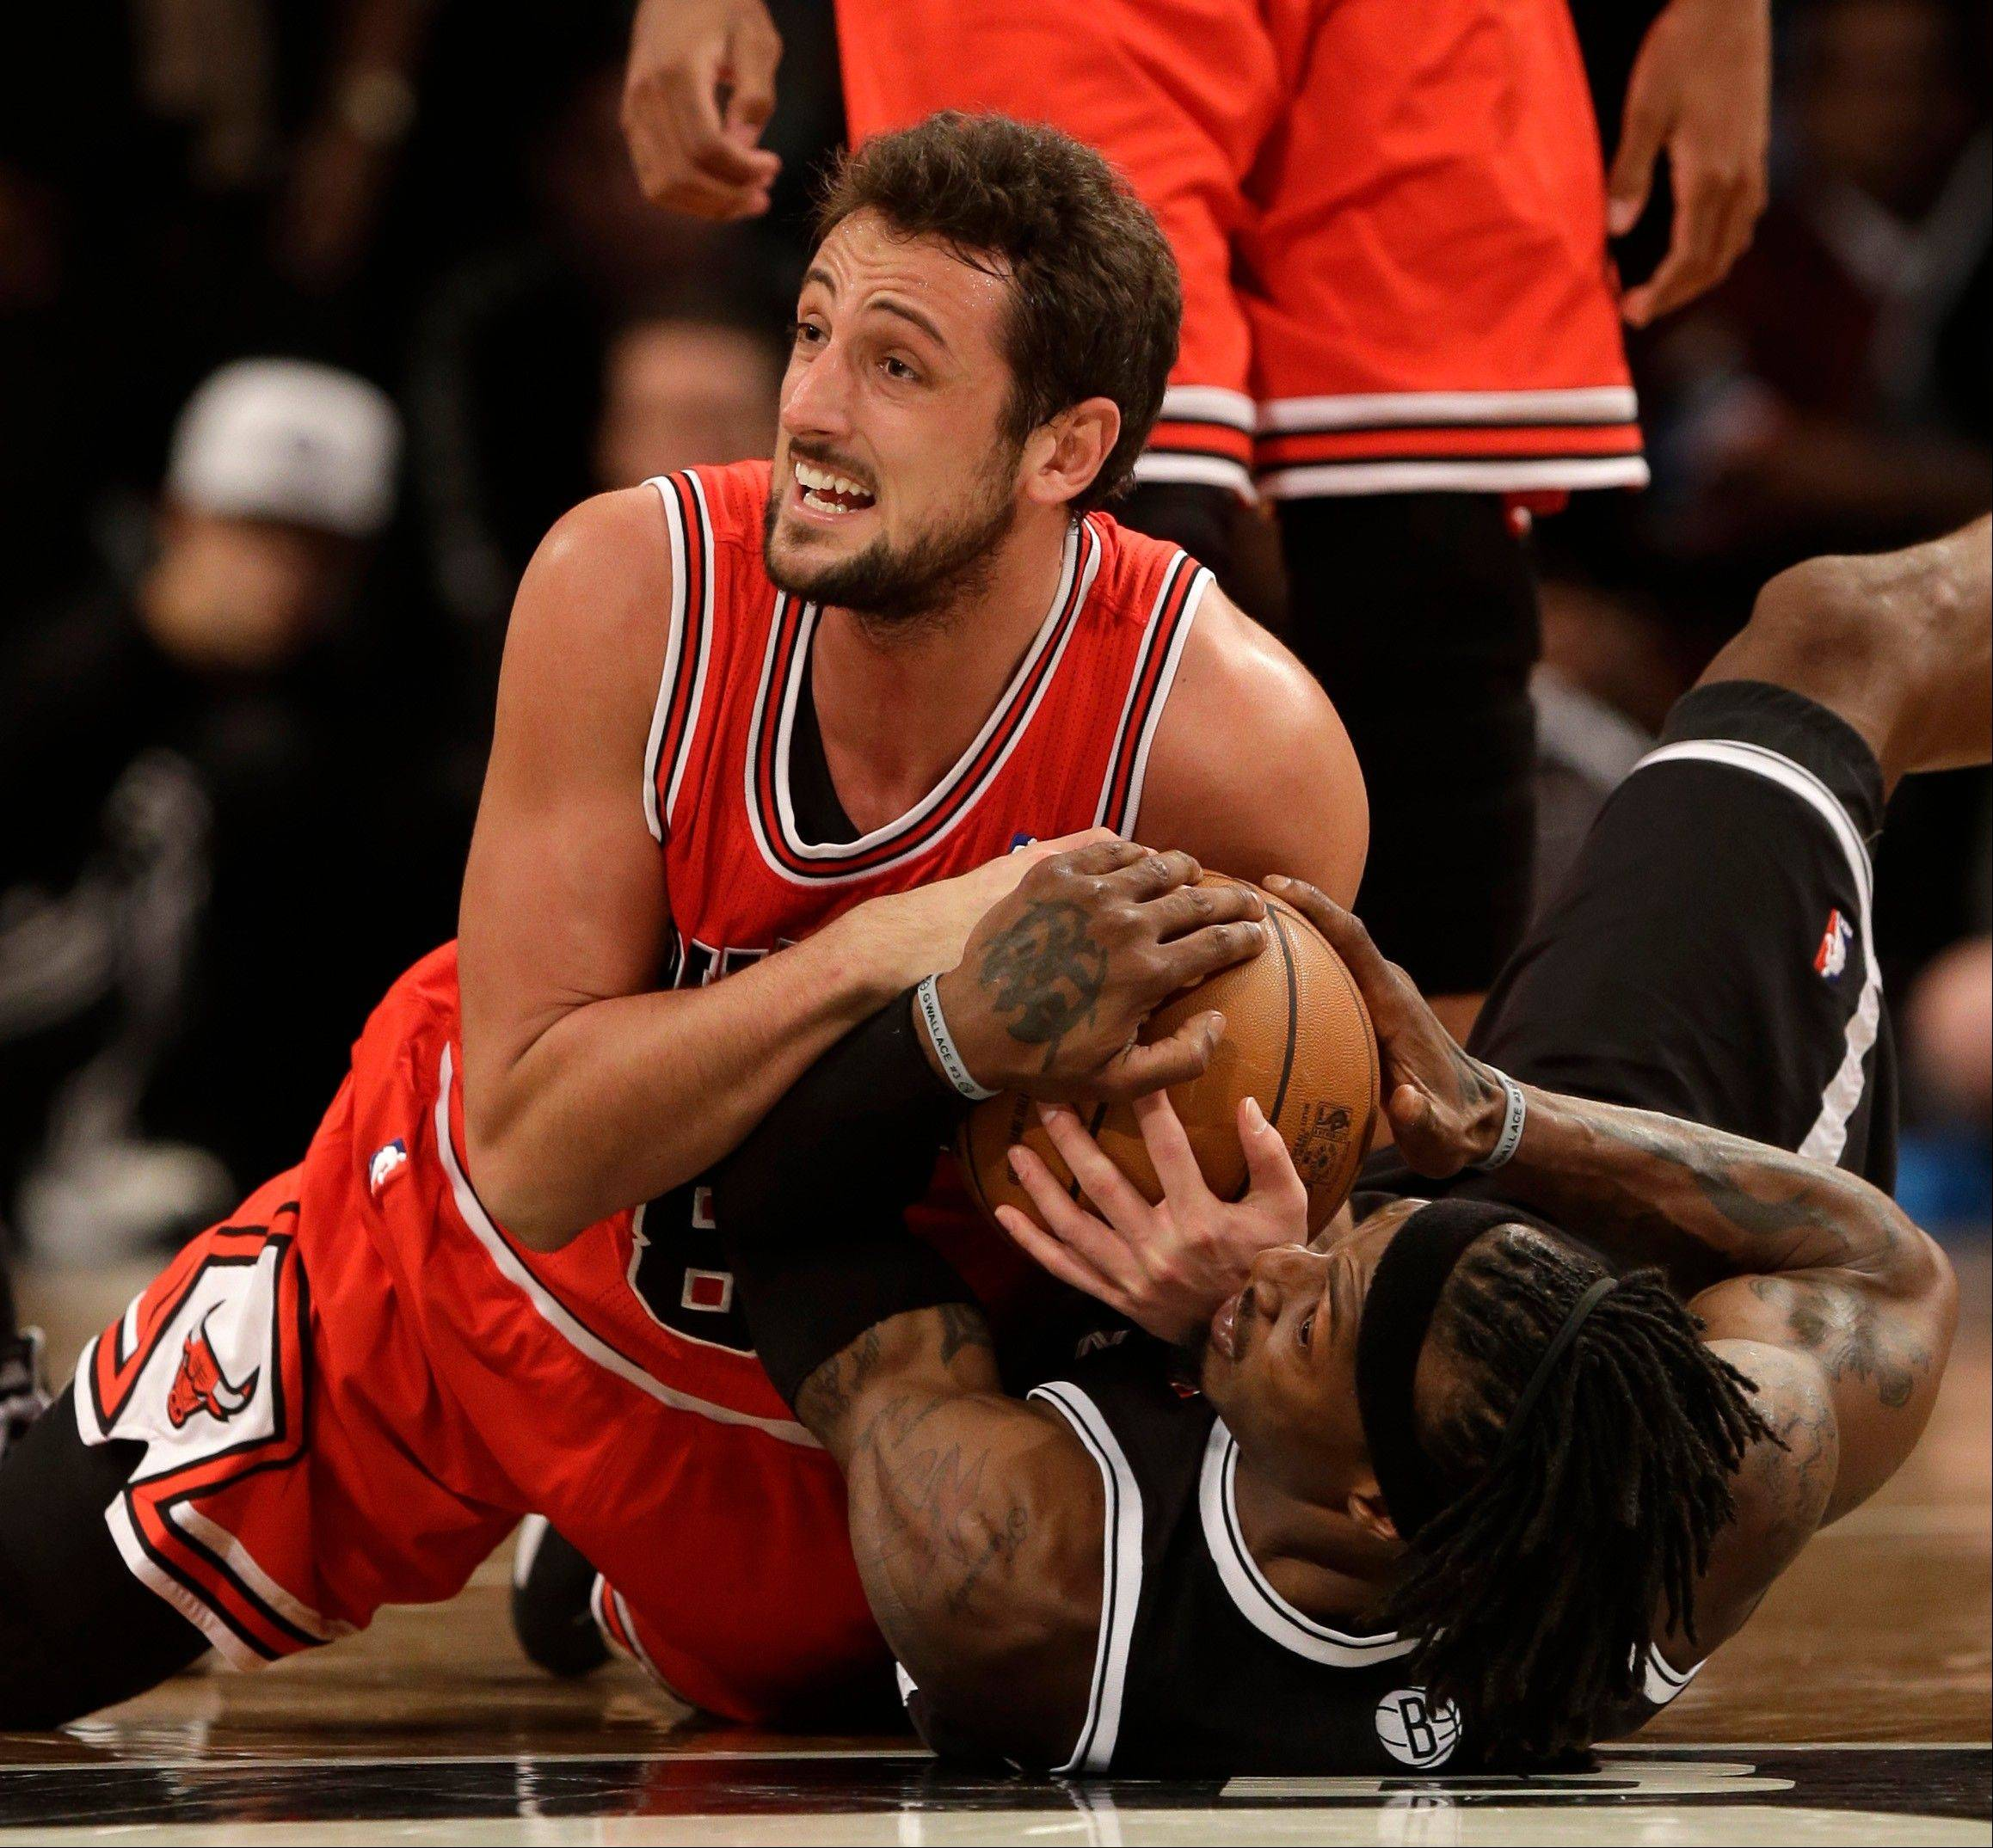 Chicago's Marco Belinelli, top, and Brooklyn's Gerald Wallace fight for a loose ball during Saturday's playoff game, which the Bulls lost 106-89.